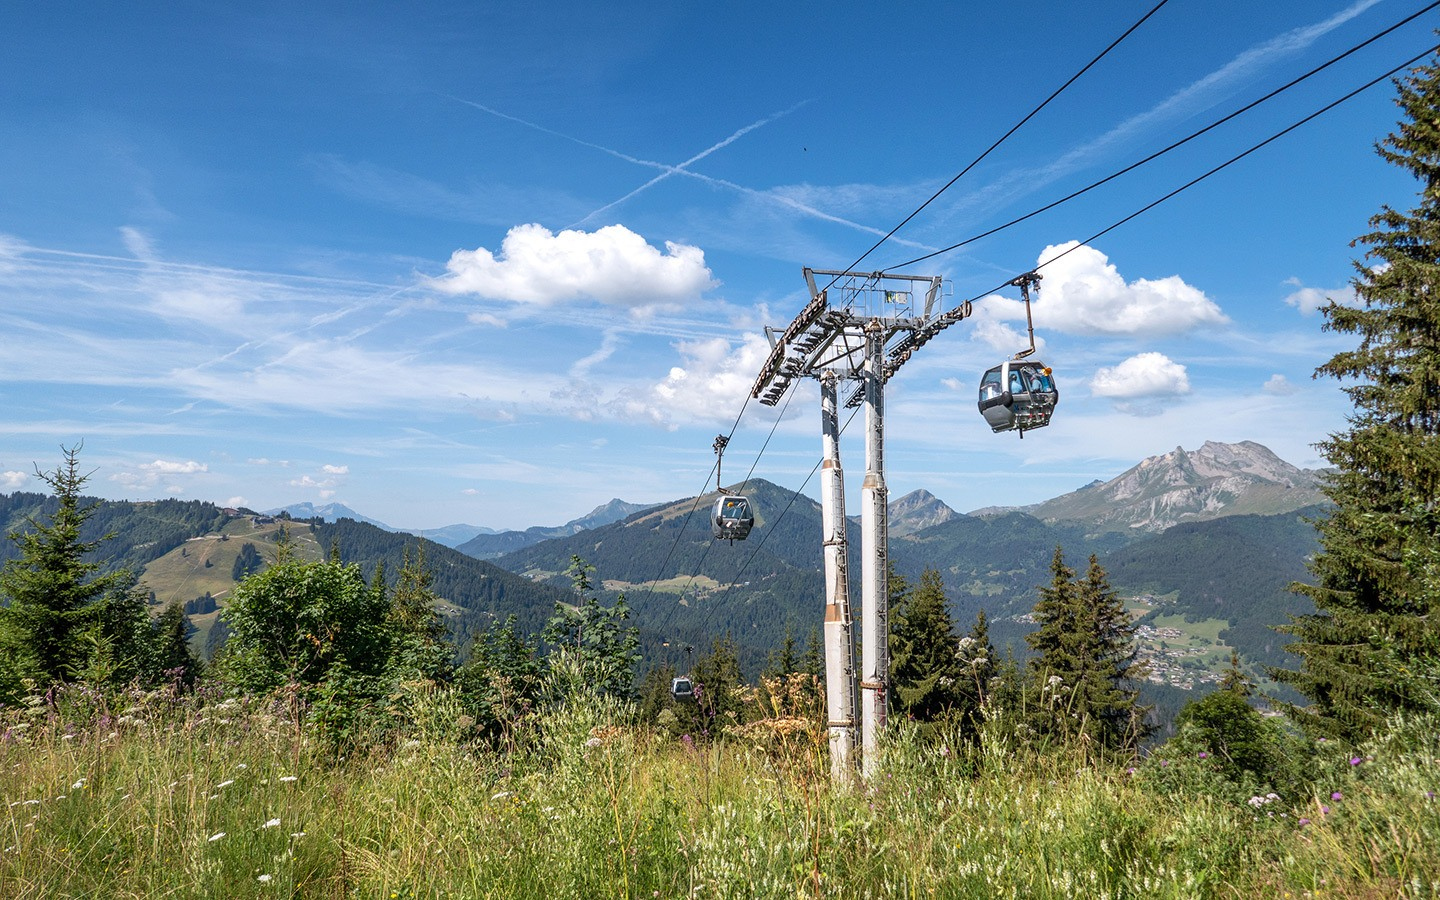 The Super Morzine cable car, Portes du Soleil, France